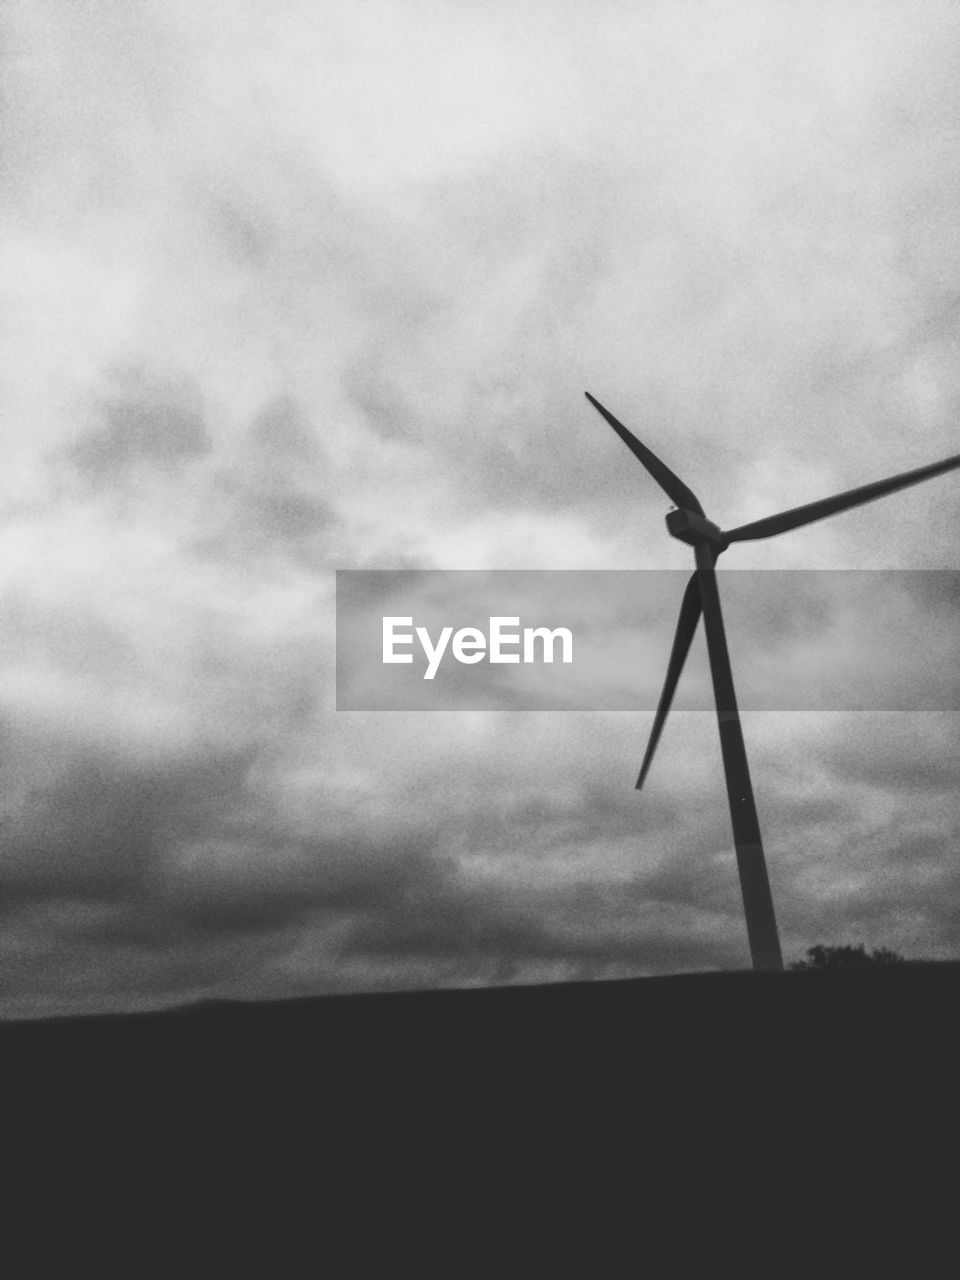 alternative energy, environmental conservation, wind turbine, wind power, fuel and power generation, windmill, renewable energy, cloud - sky, sky, industrial windmill, nature, outdoors, low angle view, no people, rural scene, silhouette, day, traditional windmill, beauty in nature